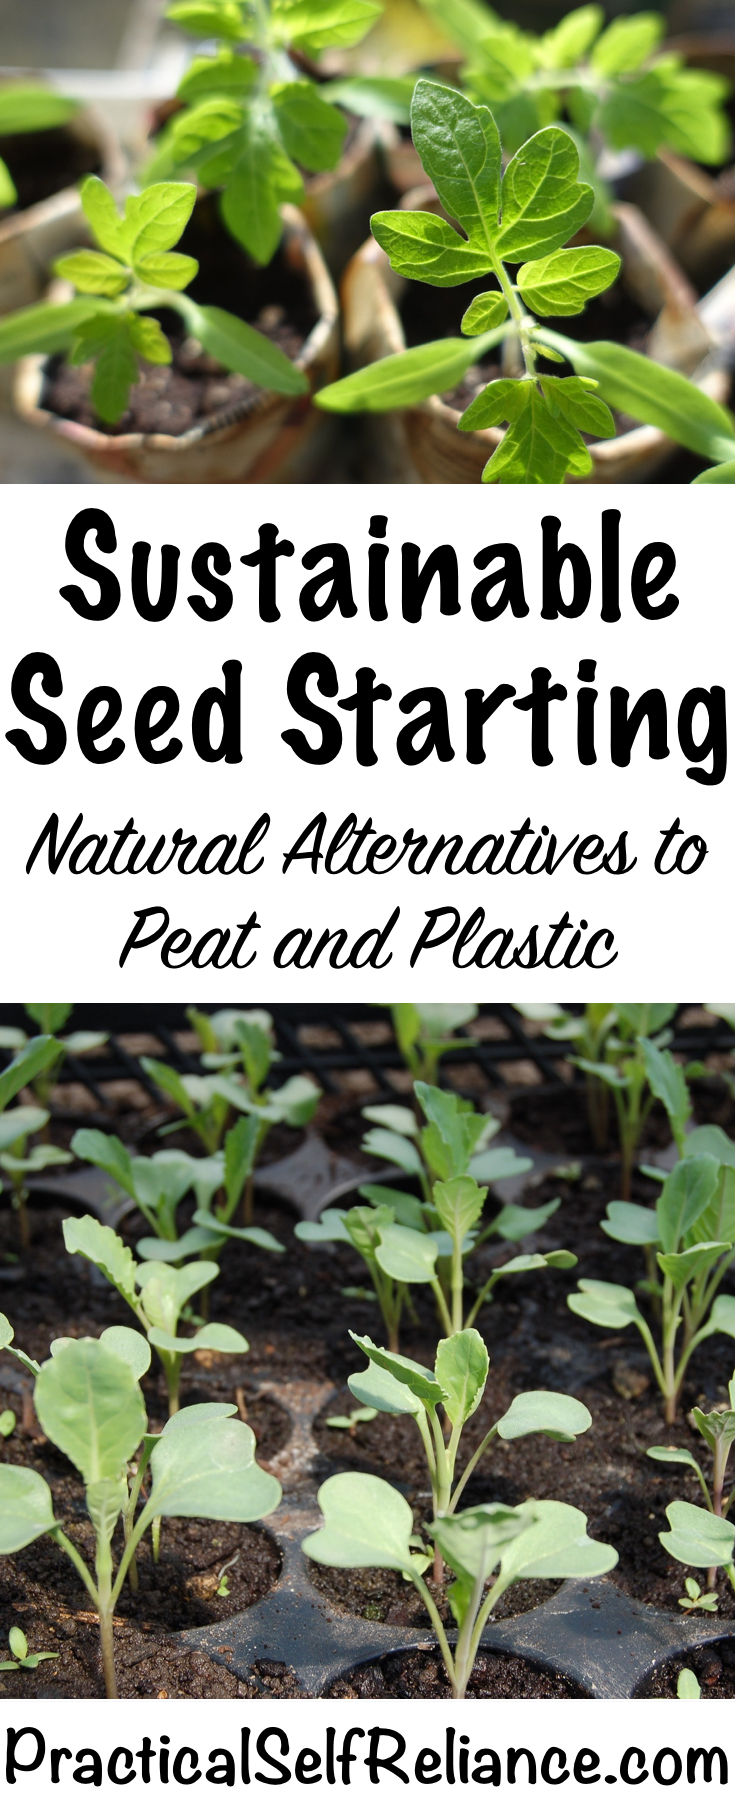 Sustainable Seed Starting Alternatives to Peat and Plastic